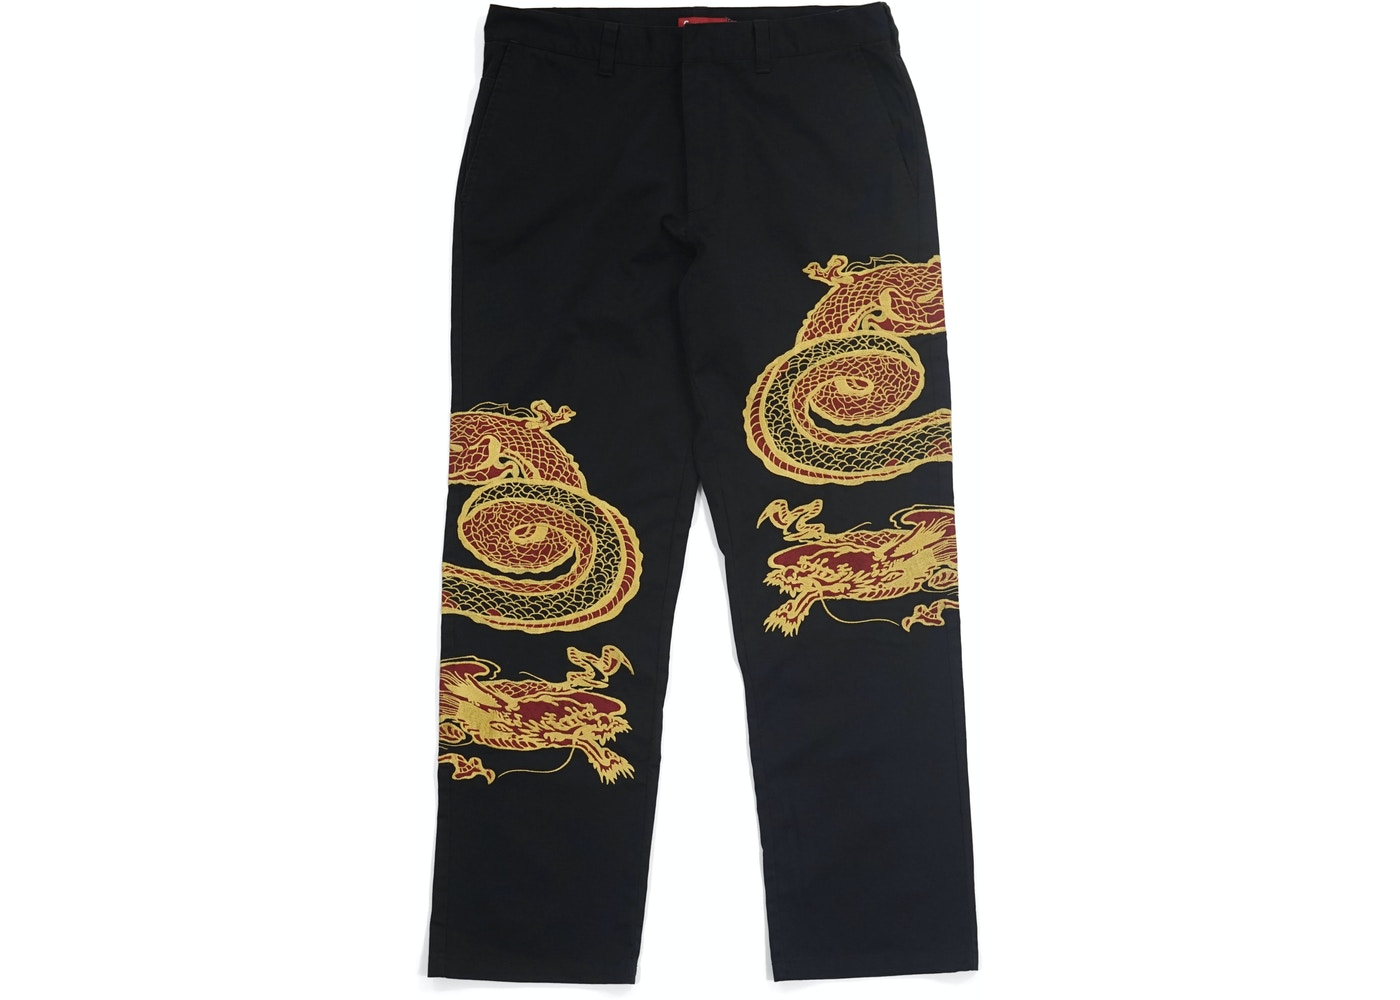 f190bbe50777 Supreme Dragon Work Pant Black. Dragon Work